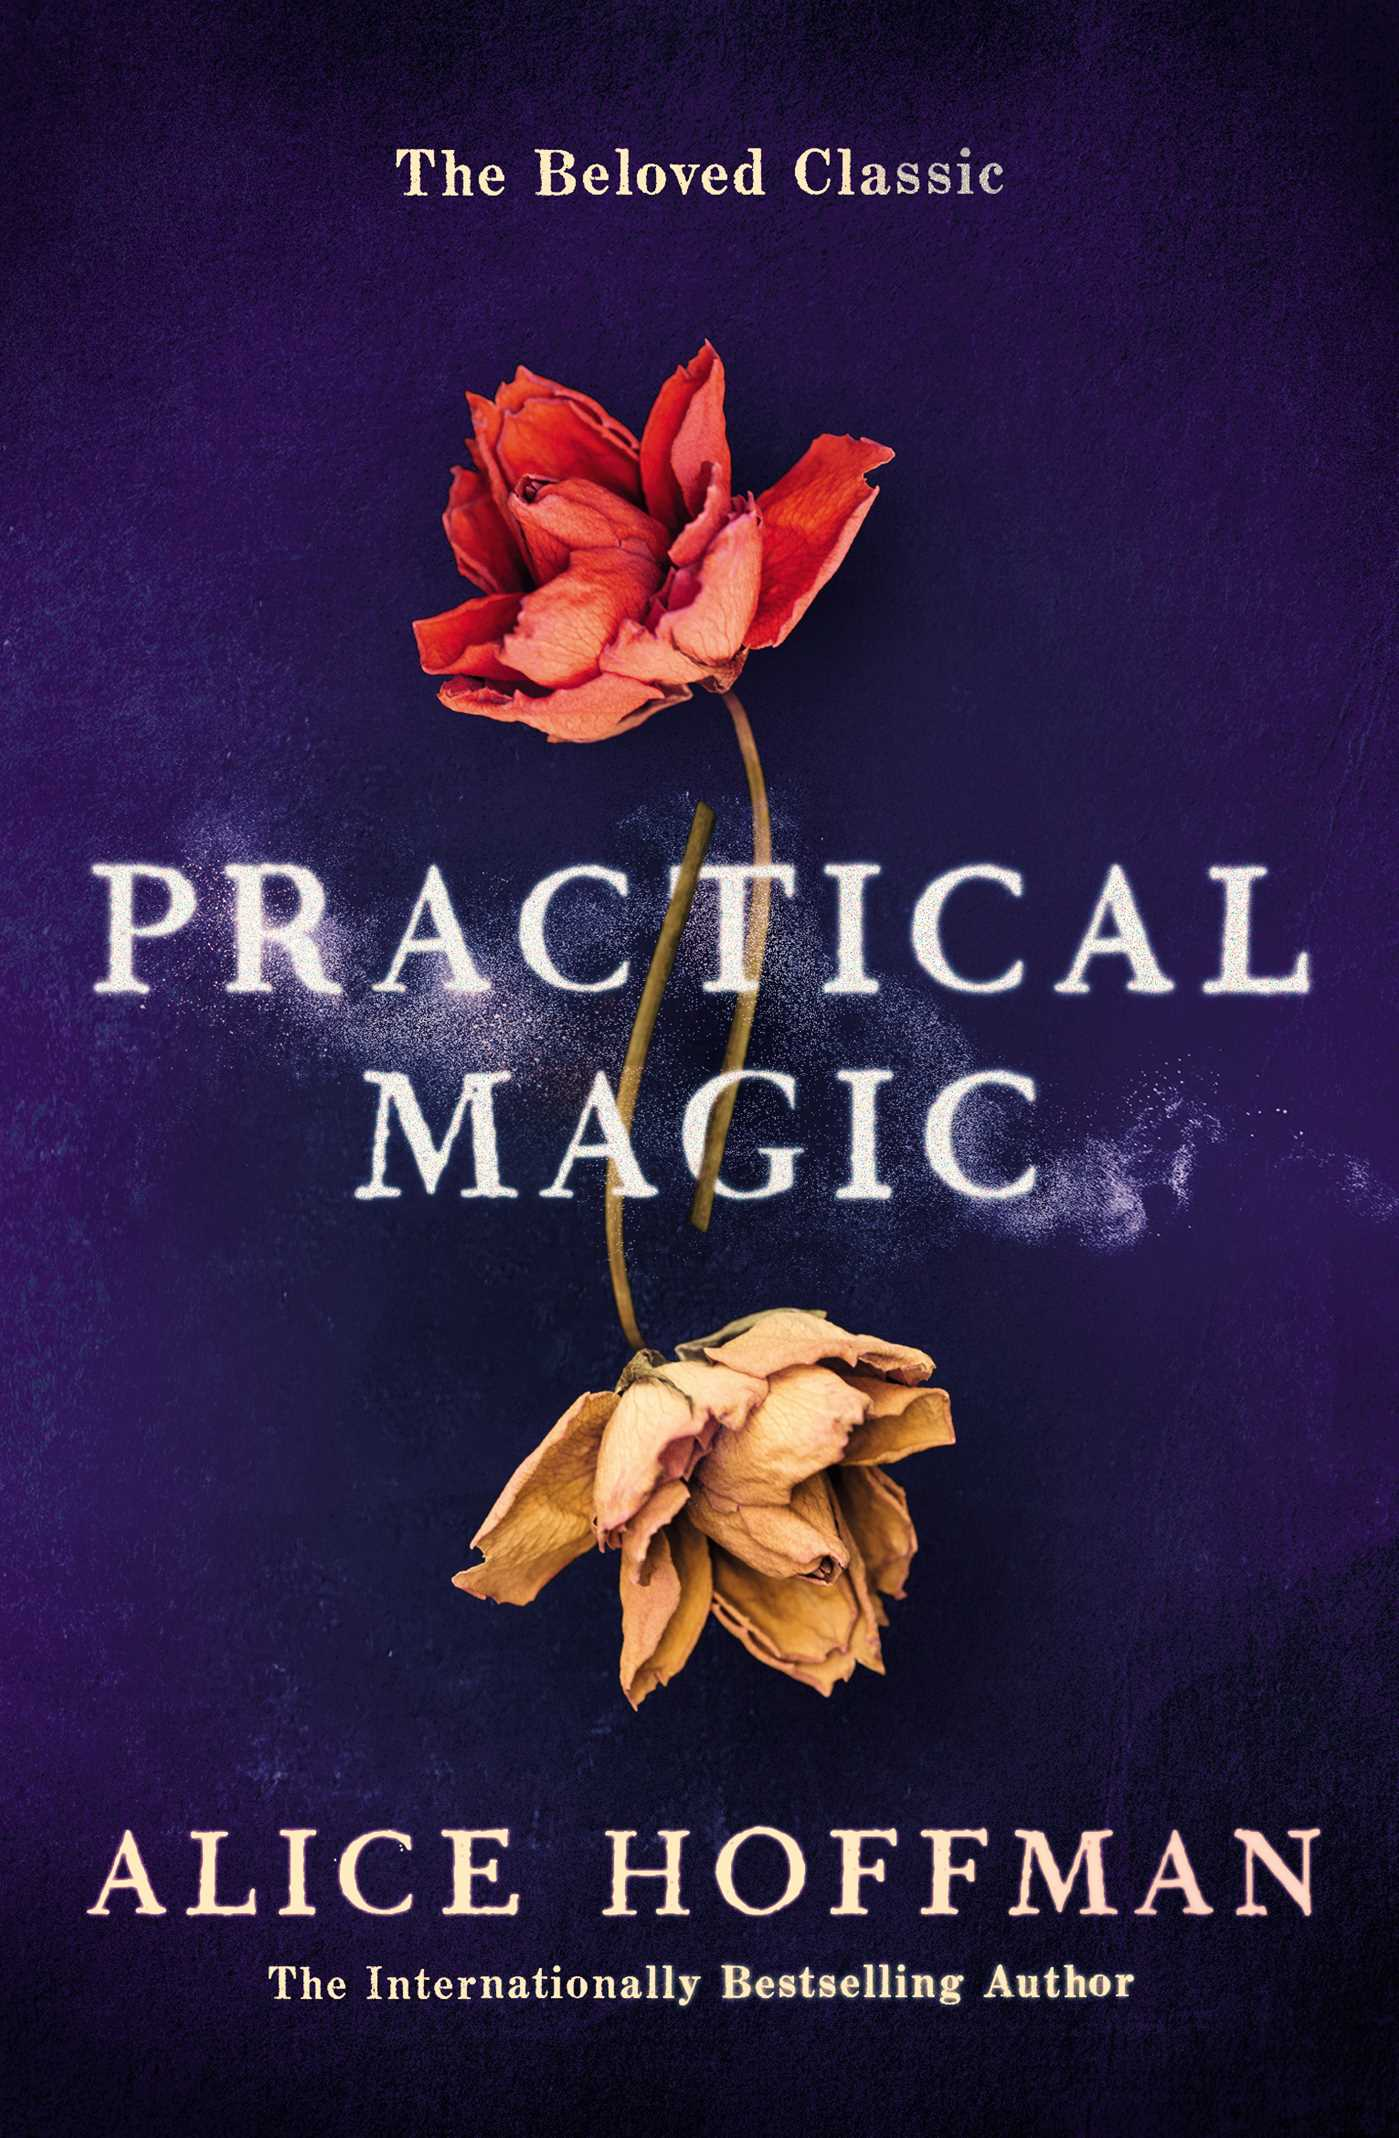 Image result for practical magic book cover